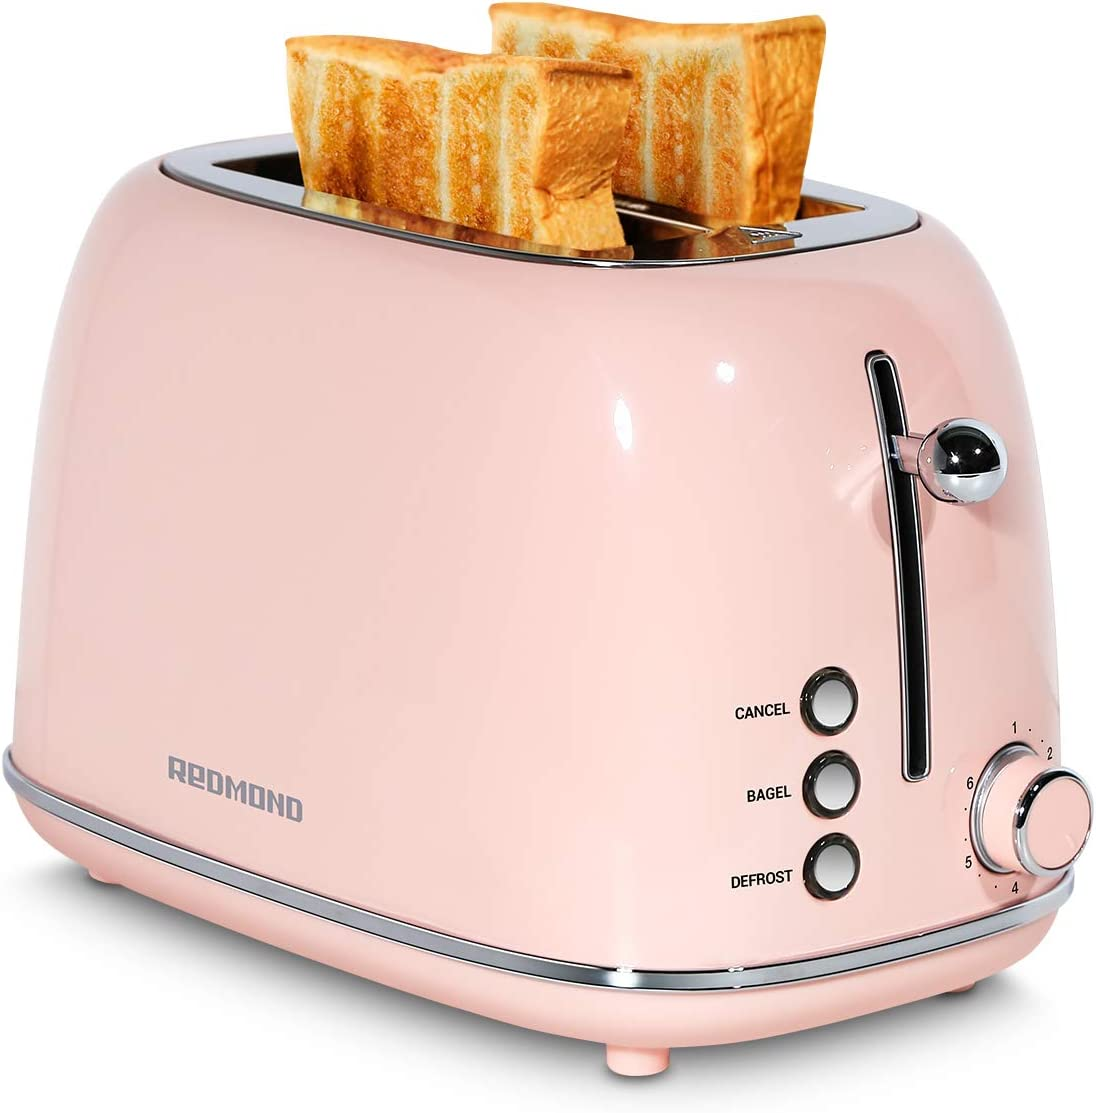 REDMOND 2 Slice Toaster Retro Stainless Steel Toaster with Bagel, Cancel, Defrost Function and 6 Bread Shade Settings Bread Toaster, Extra Wide Slot and Removable Crumb Tray, Pink, ST028